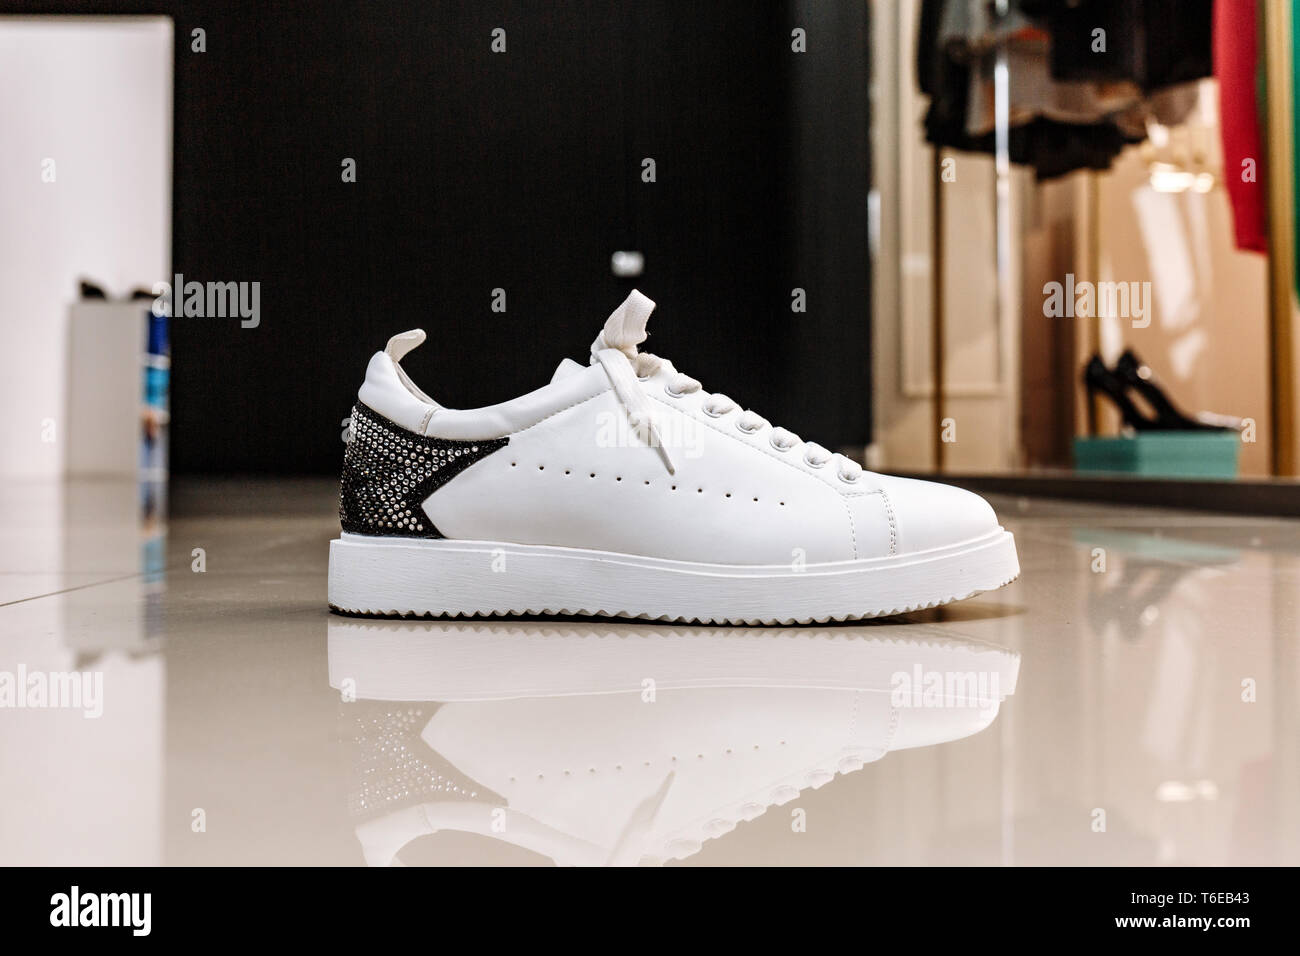 separation shoes a7208 0745b stylish white sneaker with a star ornament made of rhinestones on the  backdrop on the light